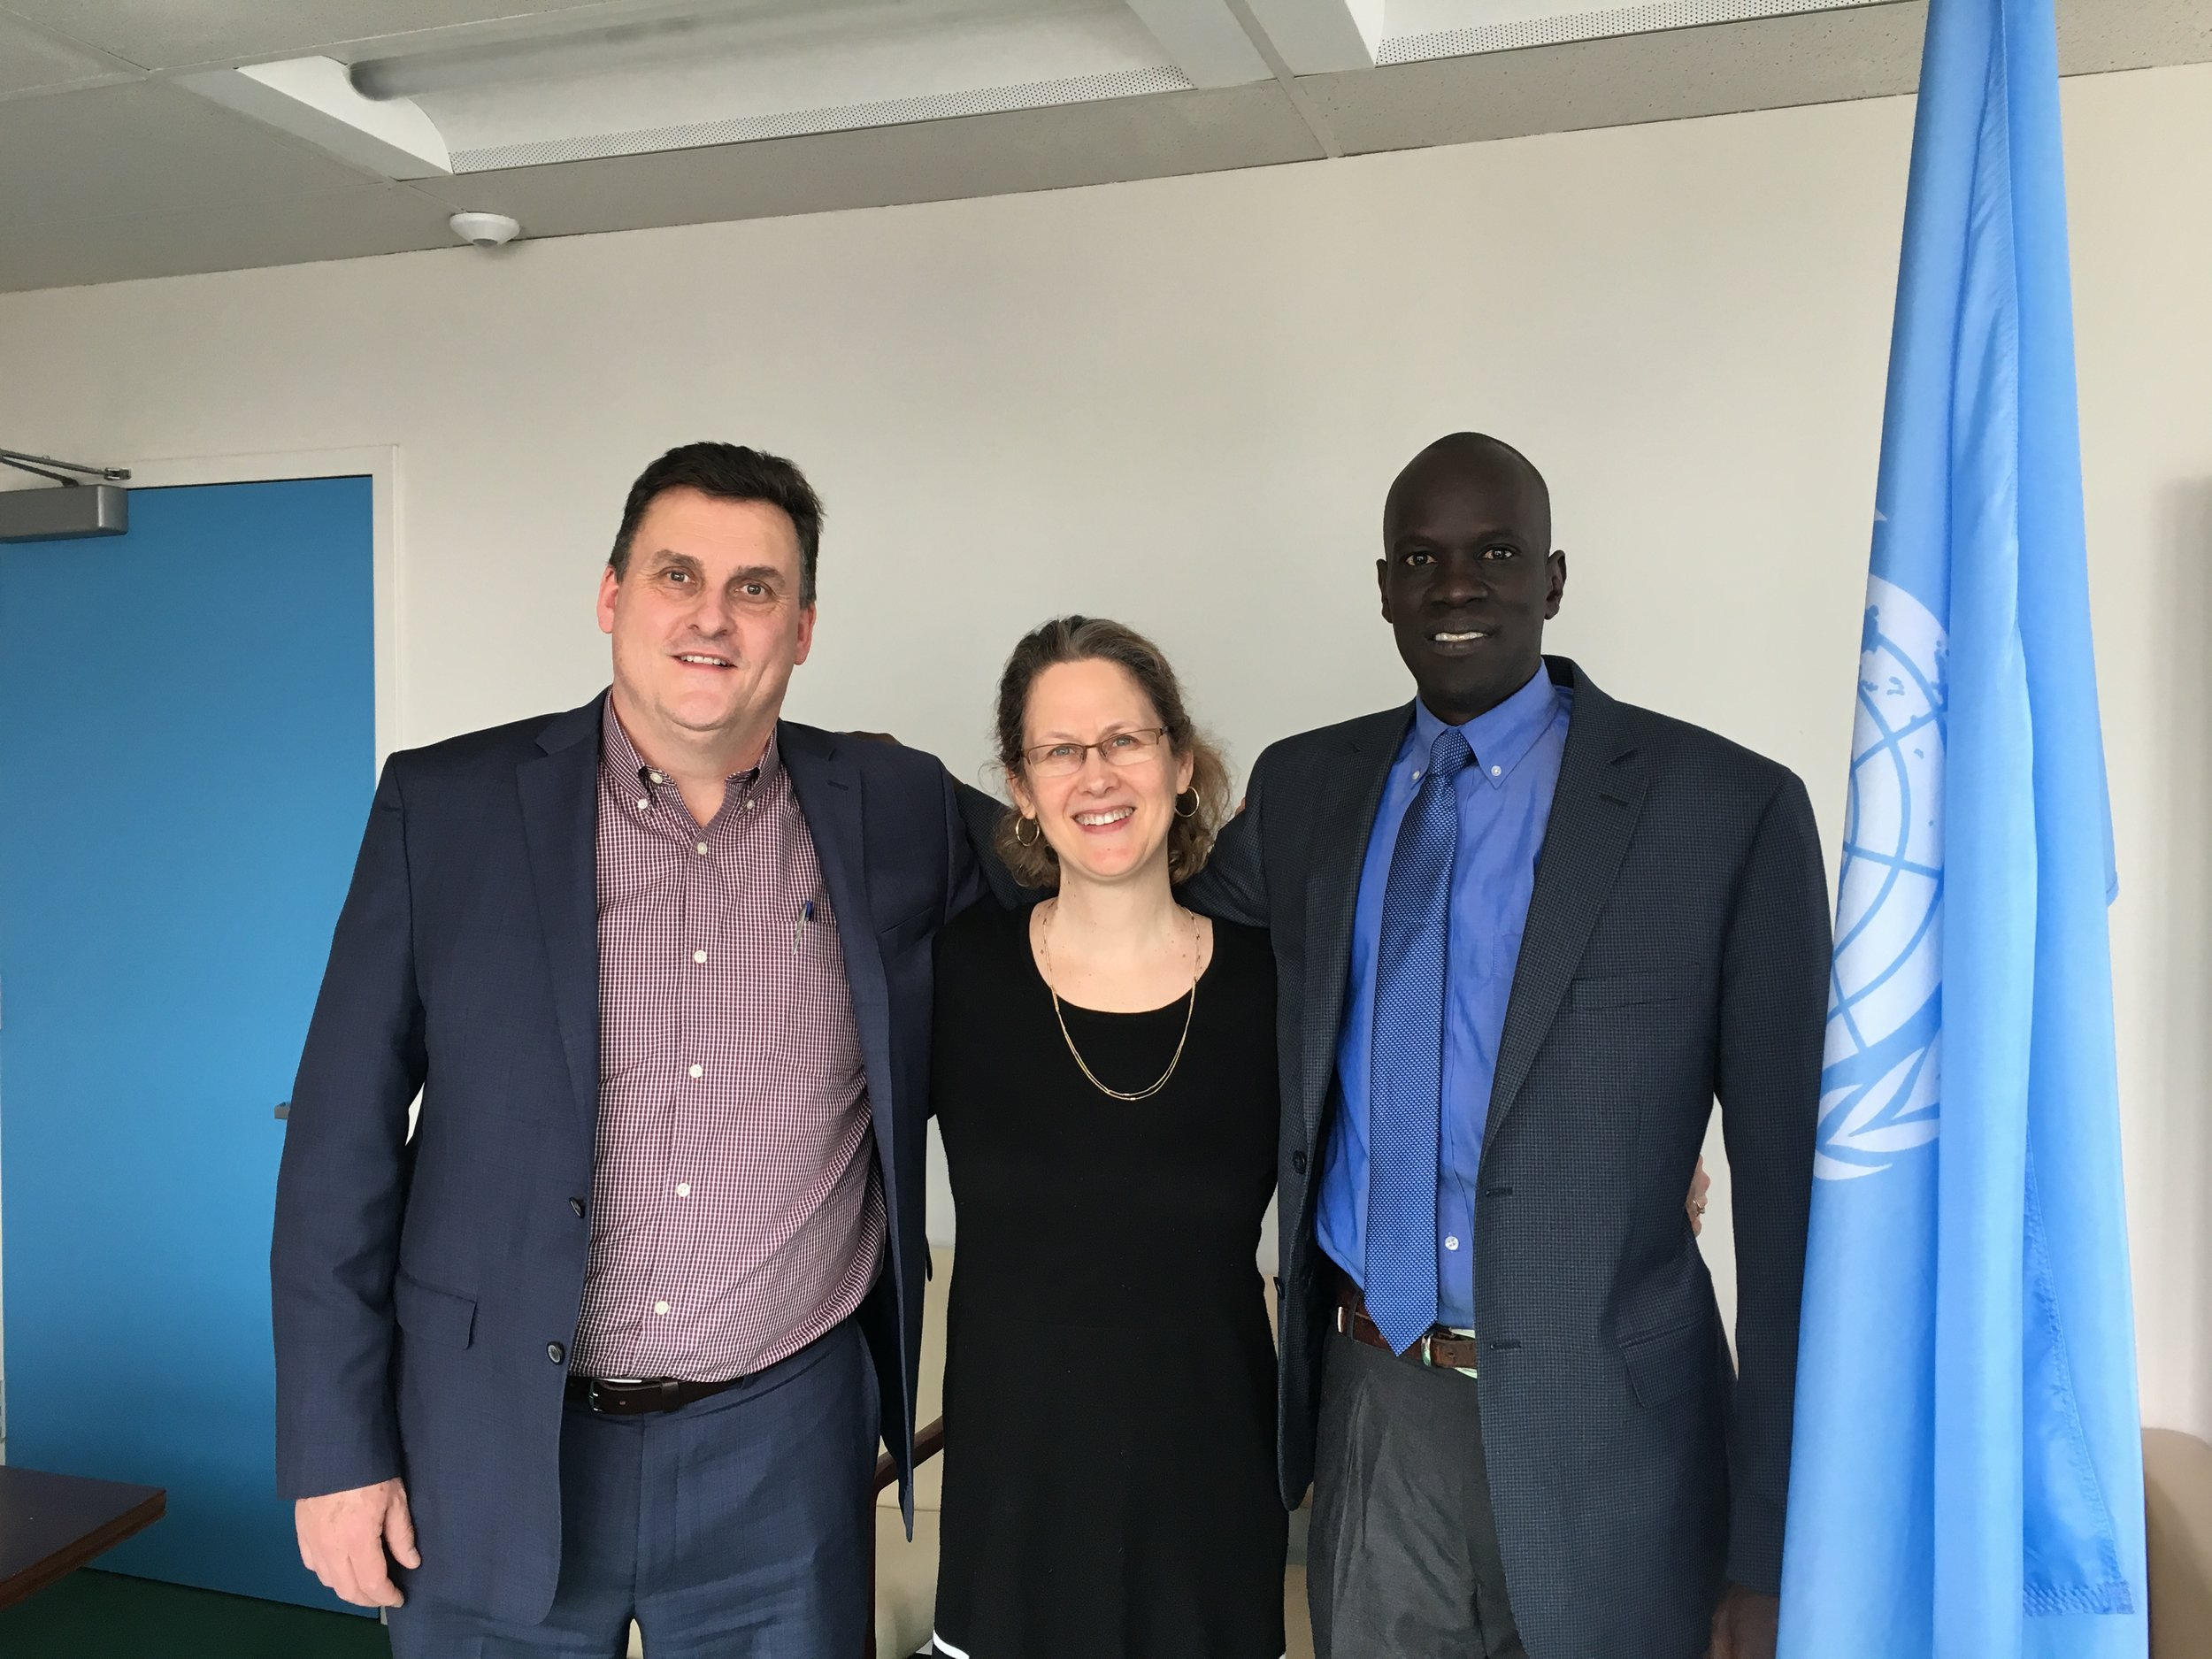 SALVA DUT, lYNN MALOOLY, AND WILL KENNEDY AT THE UN IN NEW YORK CITY.